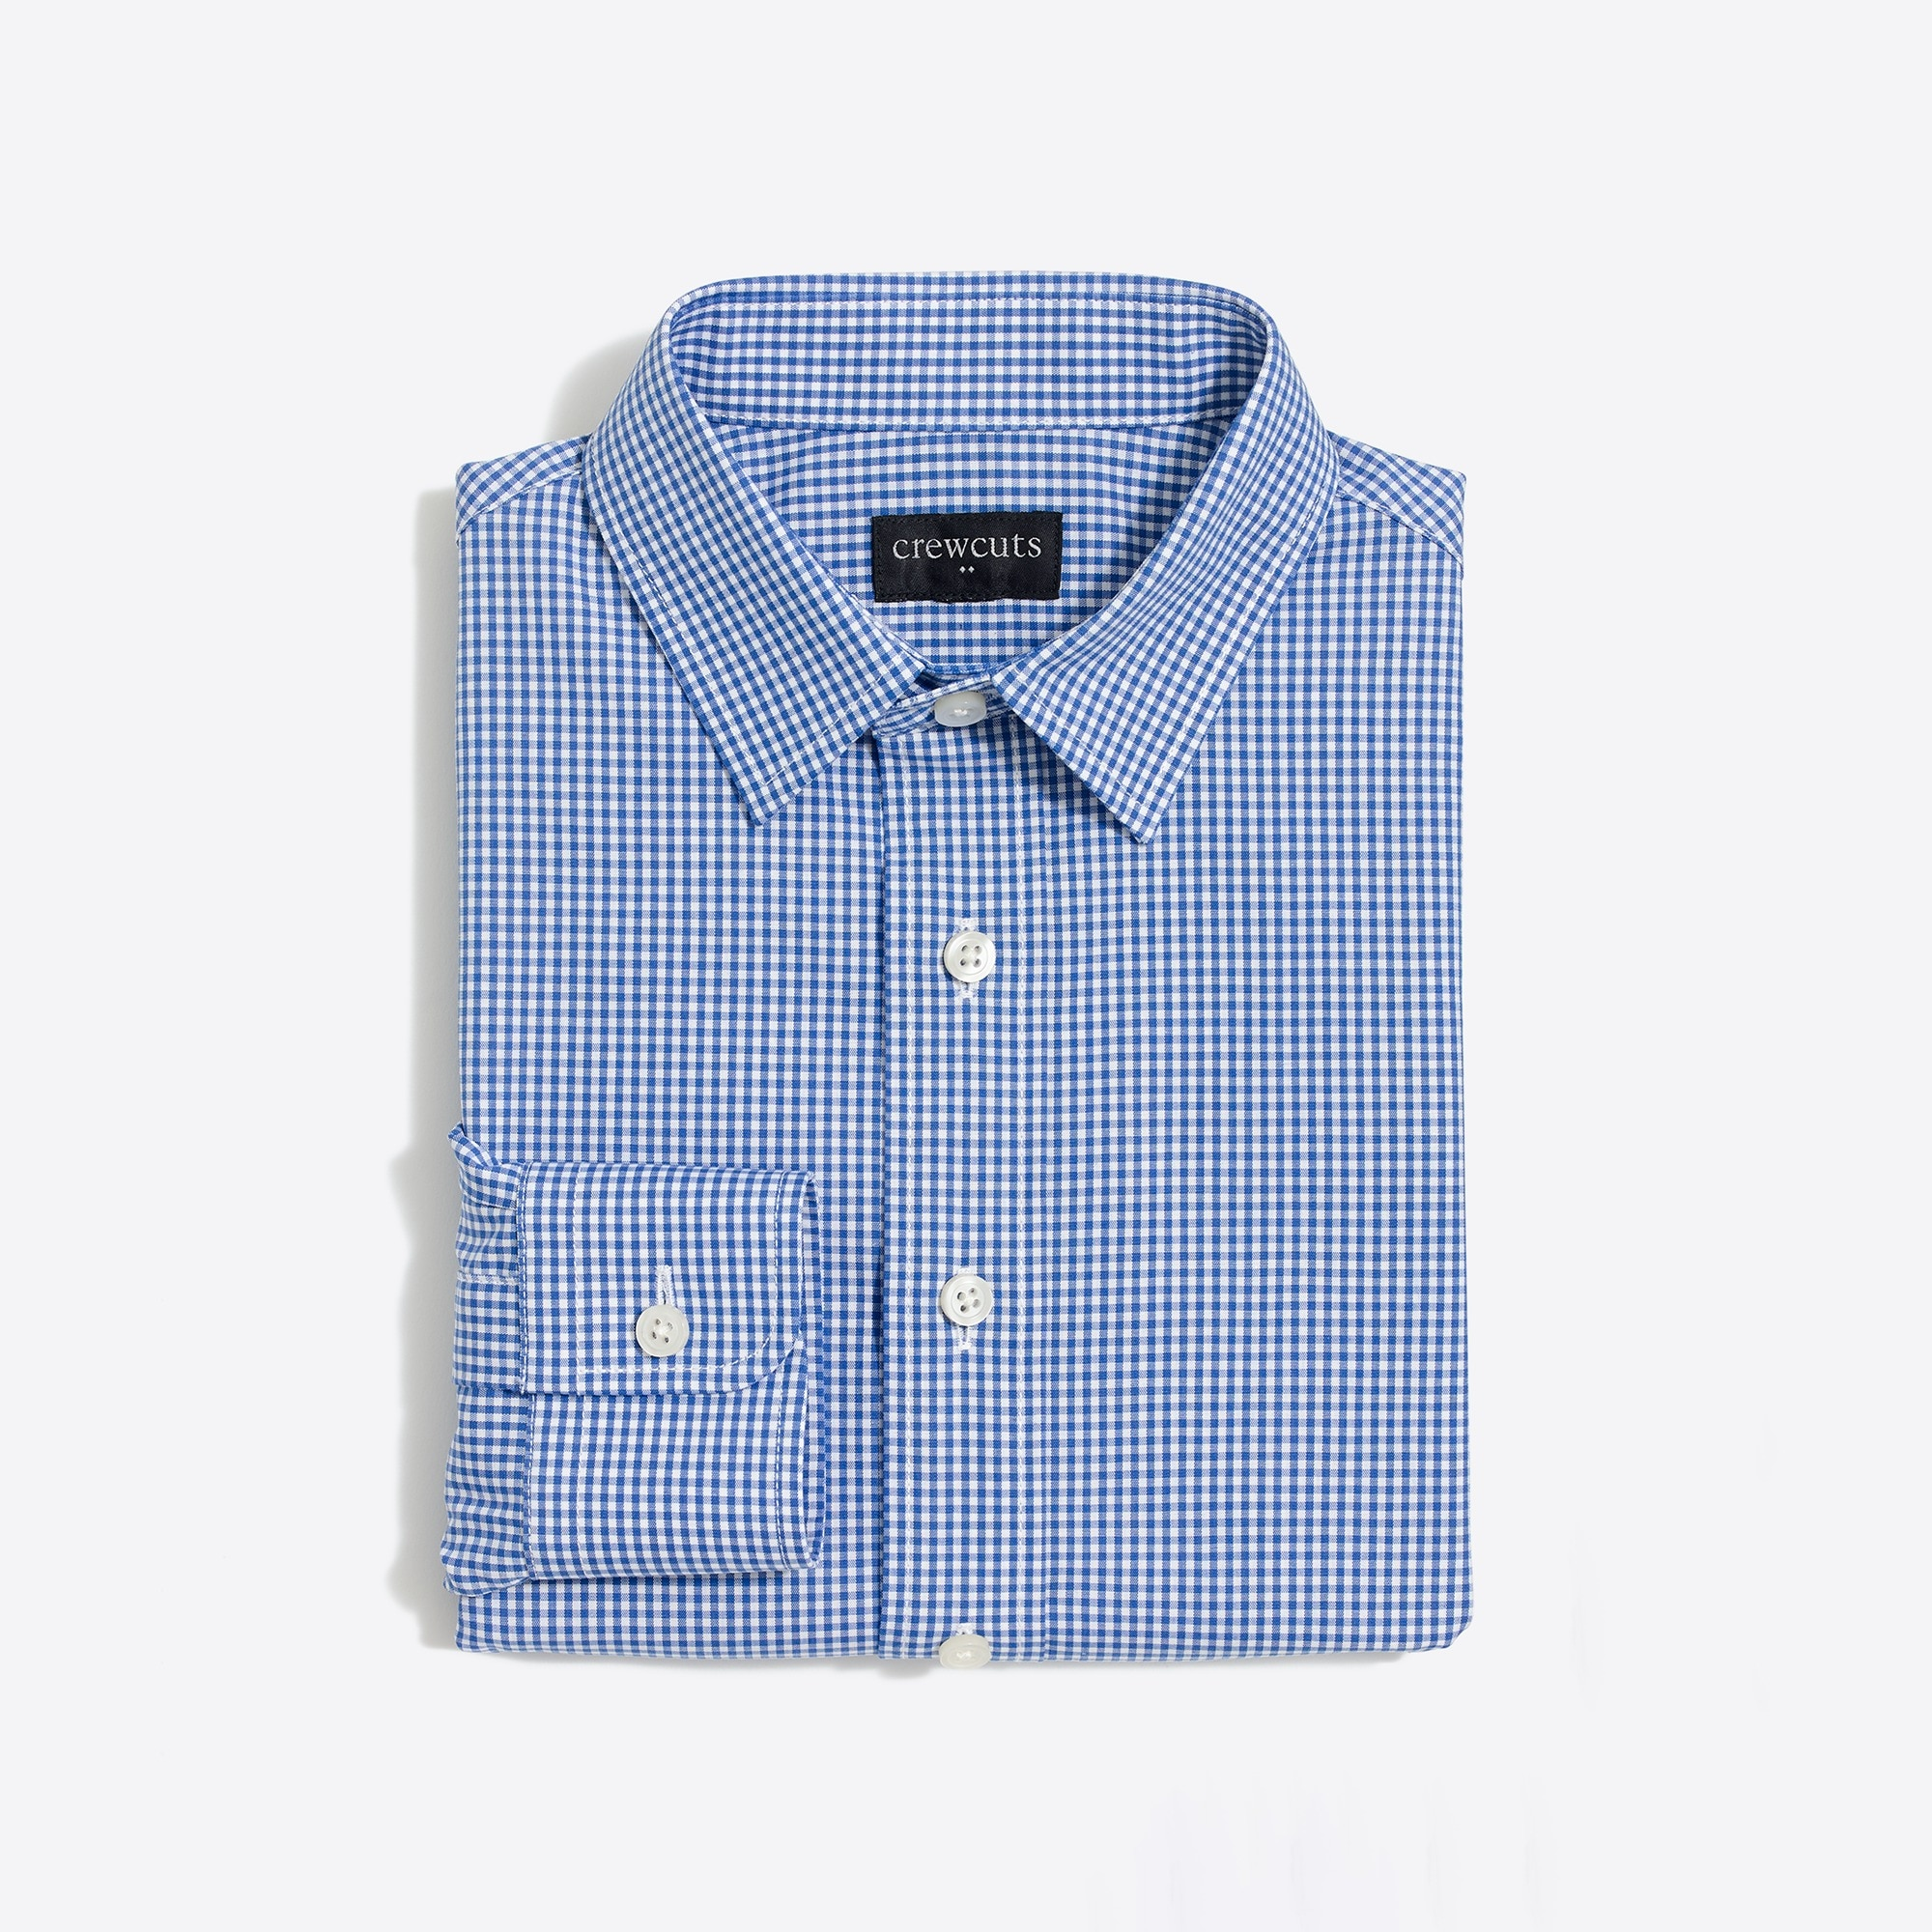 boys' long-sleeve flex thompson patterned shirt : factoryboys thompson dress shirts